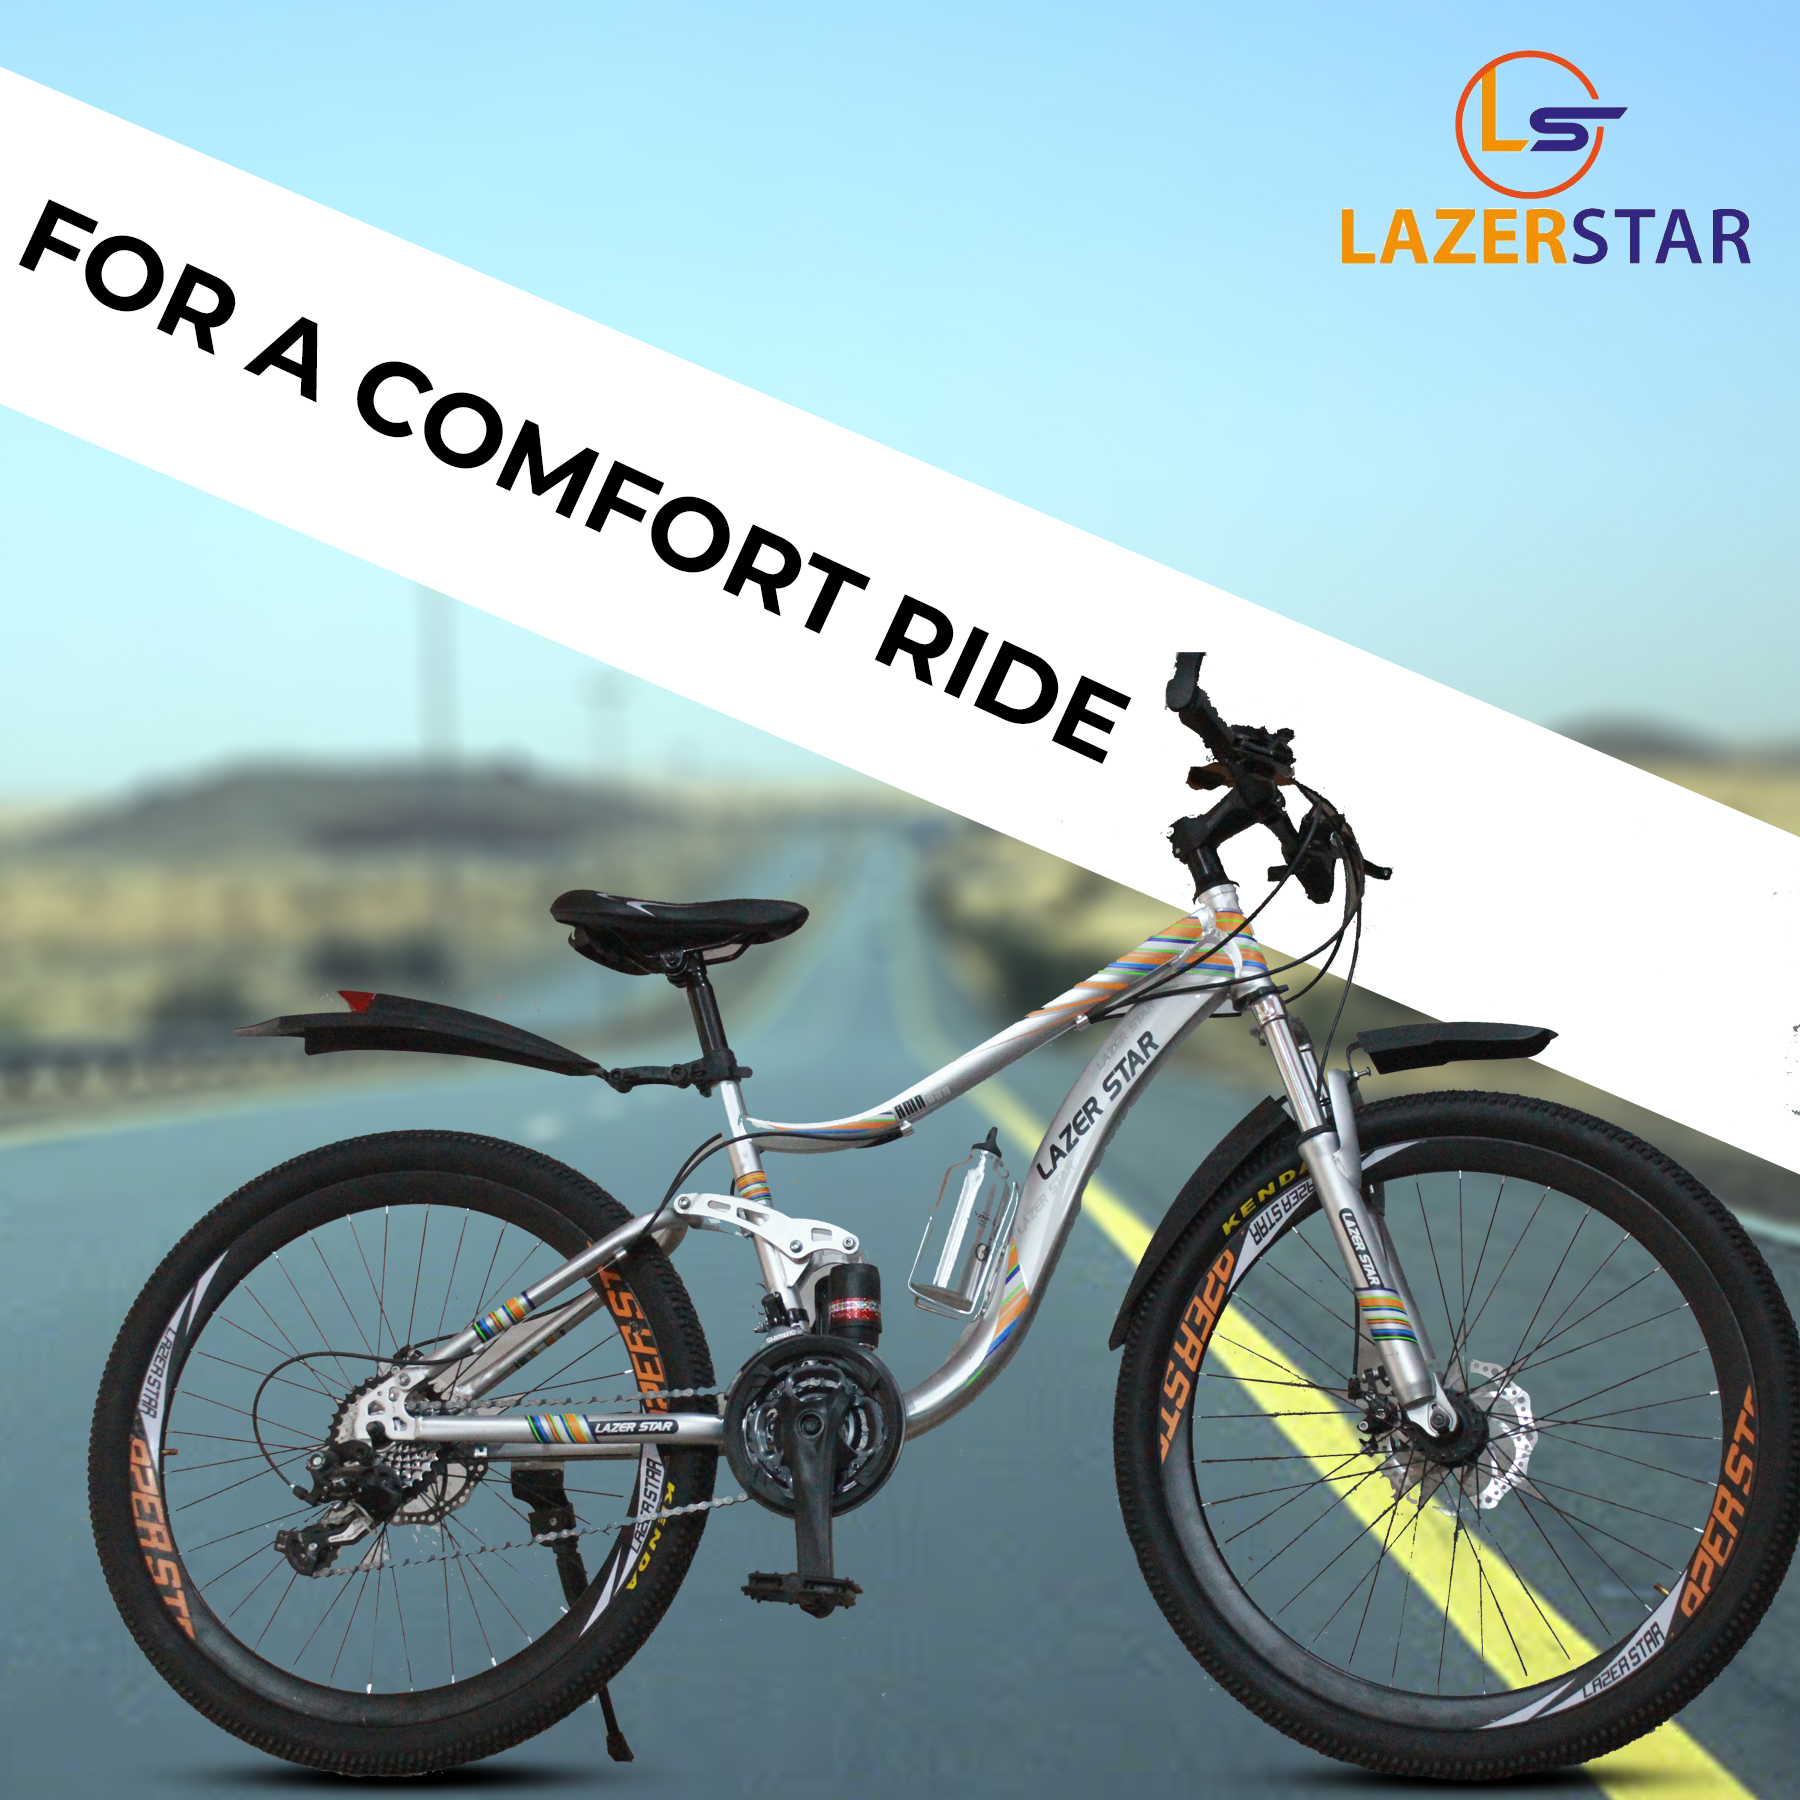 Bikes 26 inches  Fiber Alloy  RIM Tire Disk Brake System Adjustable Seat water Bottle Alloy Light Weight Mountain & Road Bike for 14 to 40 years